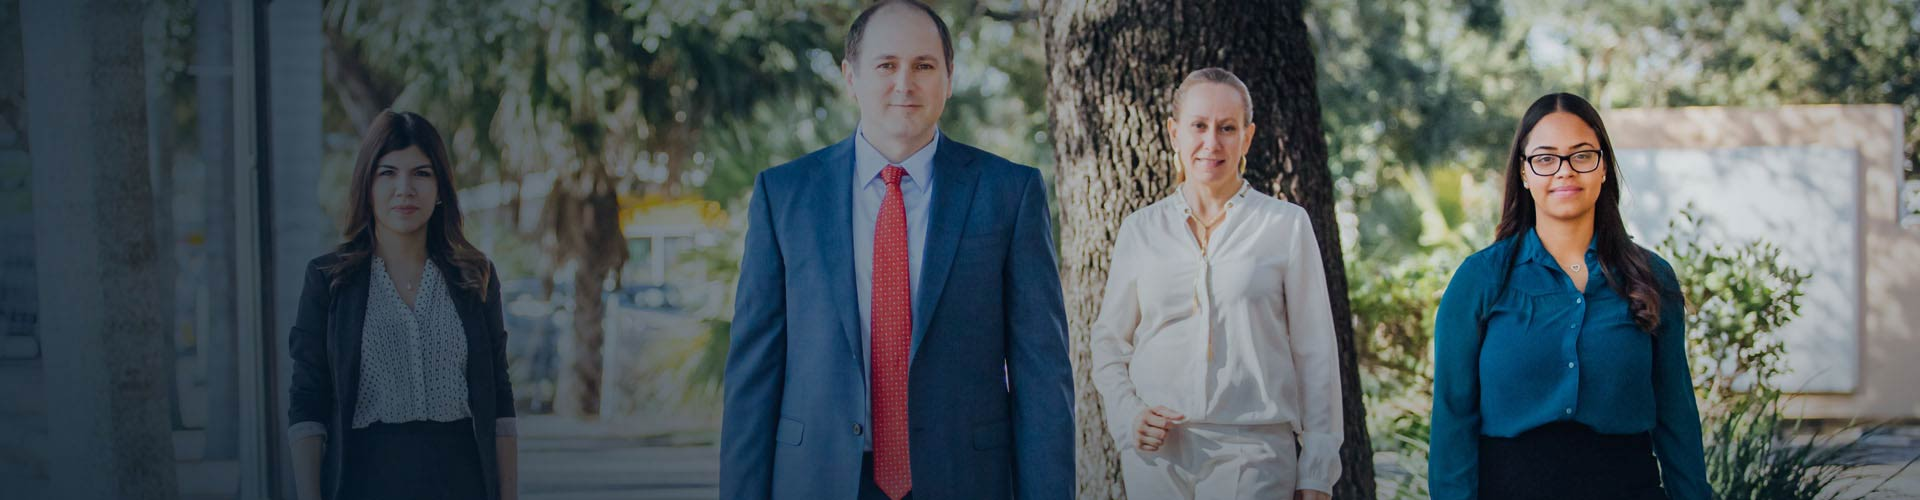 Miami-Dade Bankruptcy Attorneys - Stiberman Law Firm